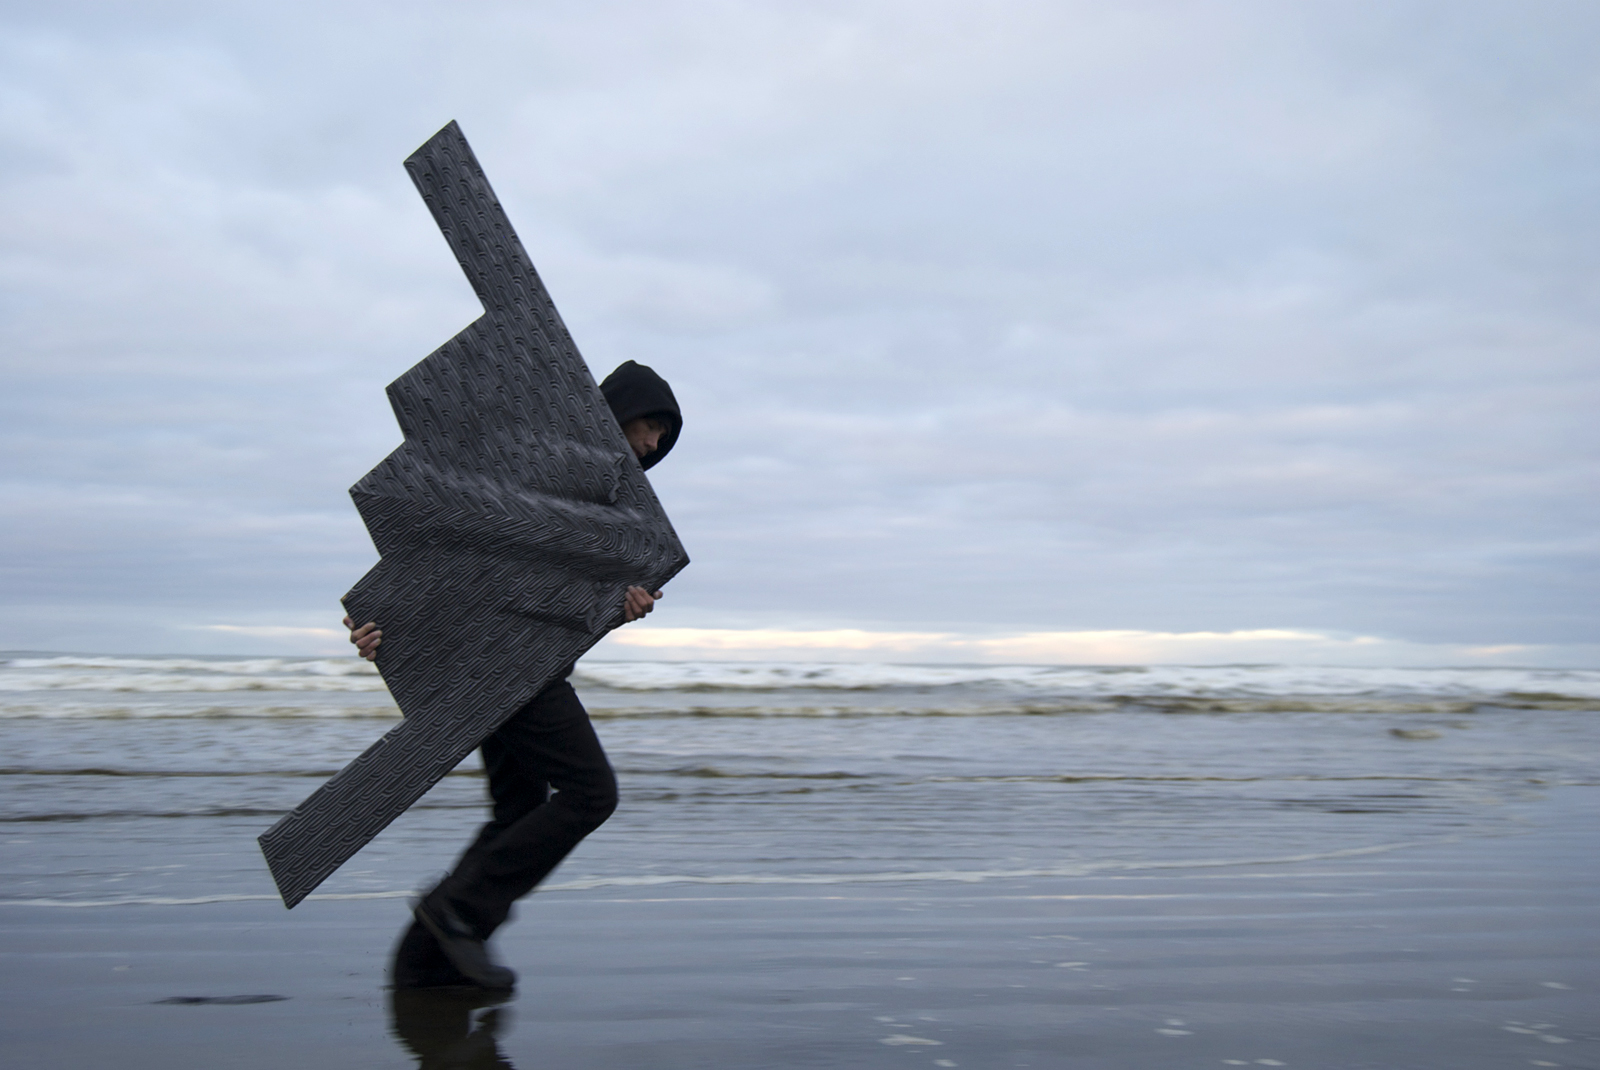 Foreshore Defender (Tūmatauenga / Humanity), sculpture by New Zealand artist Brett Graham